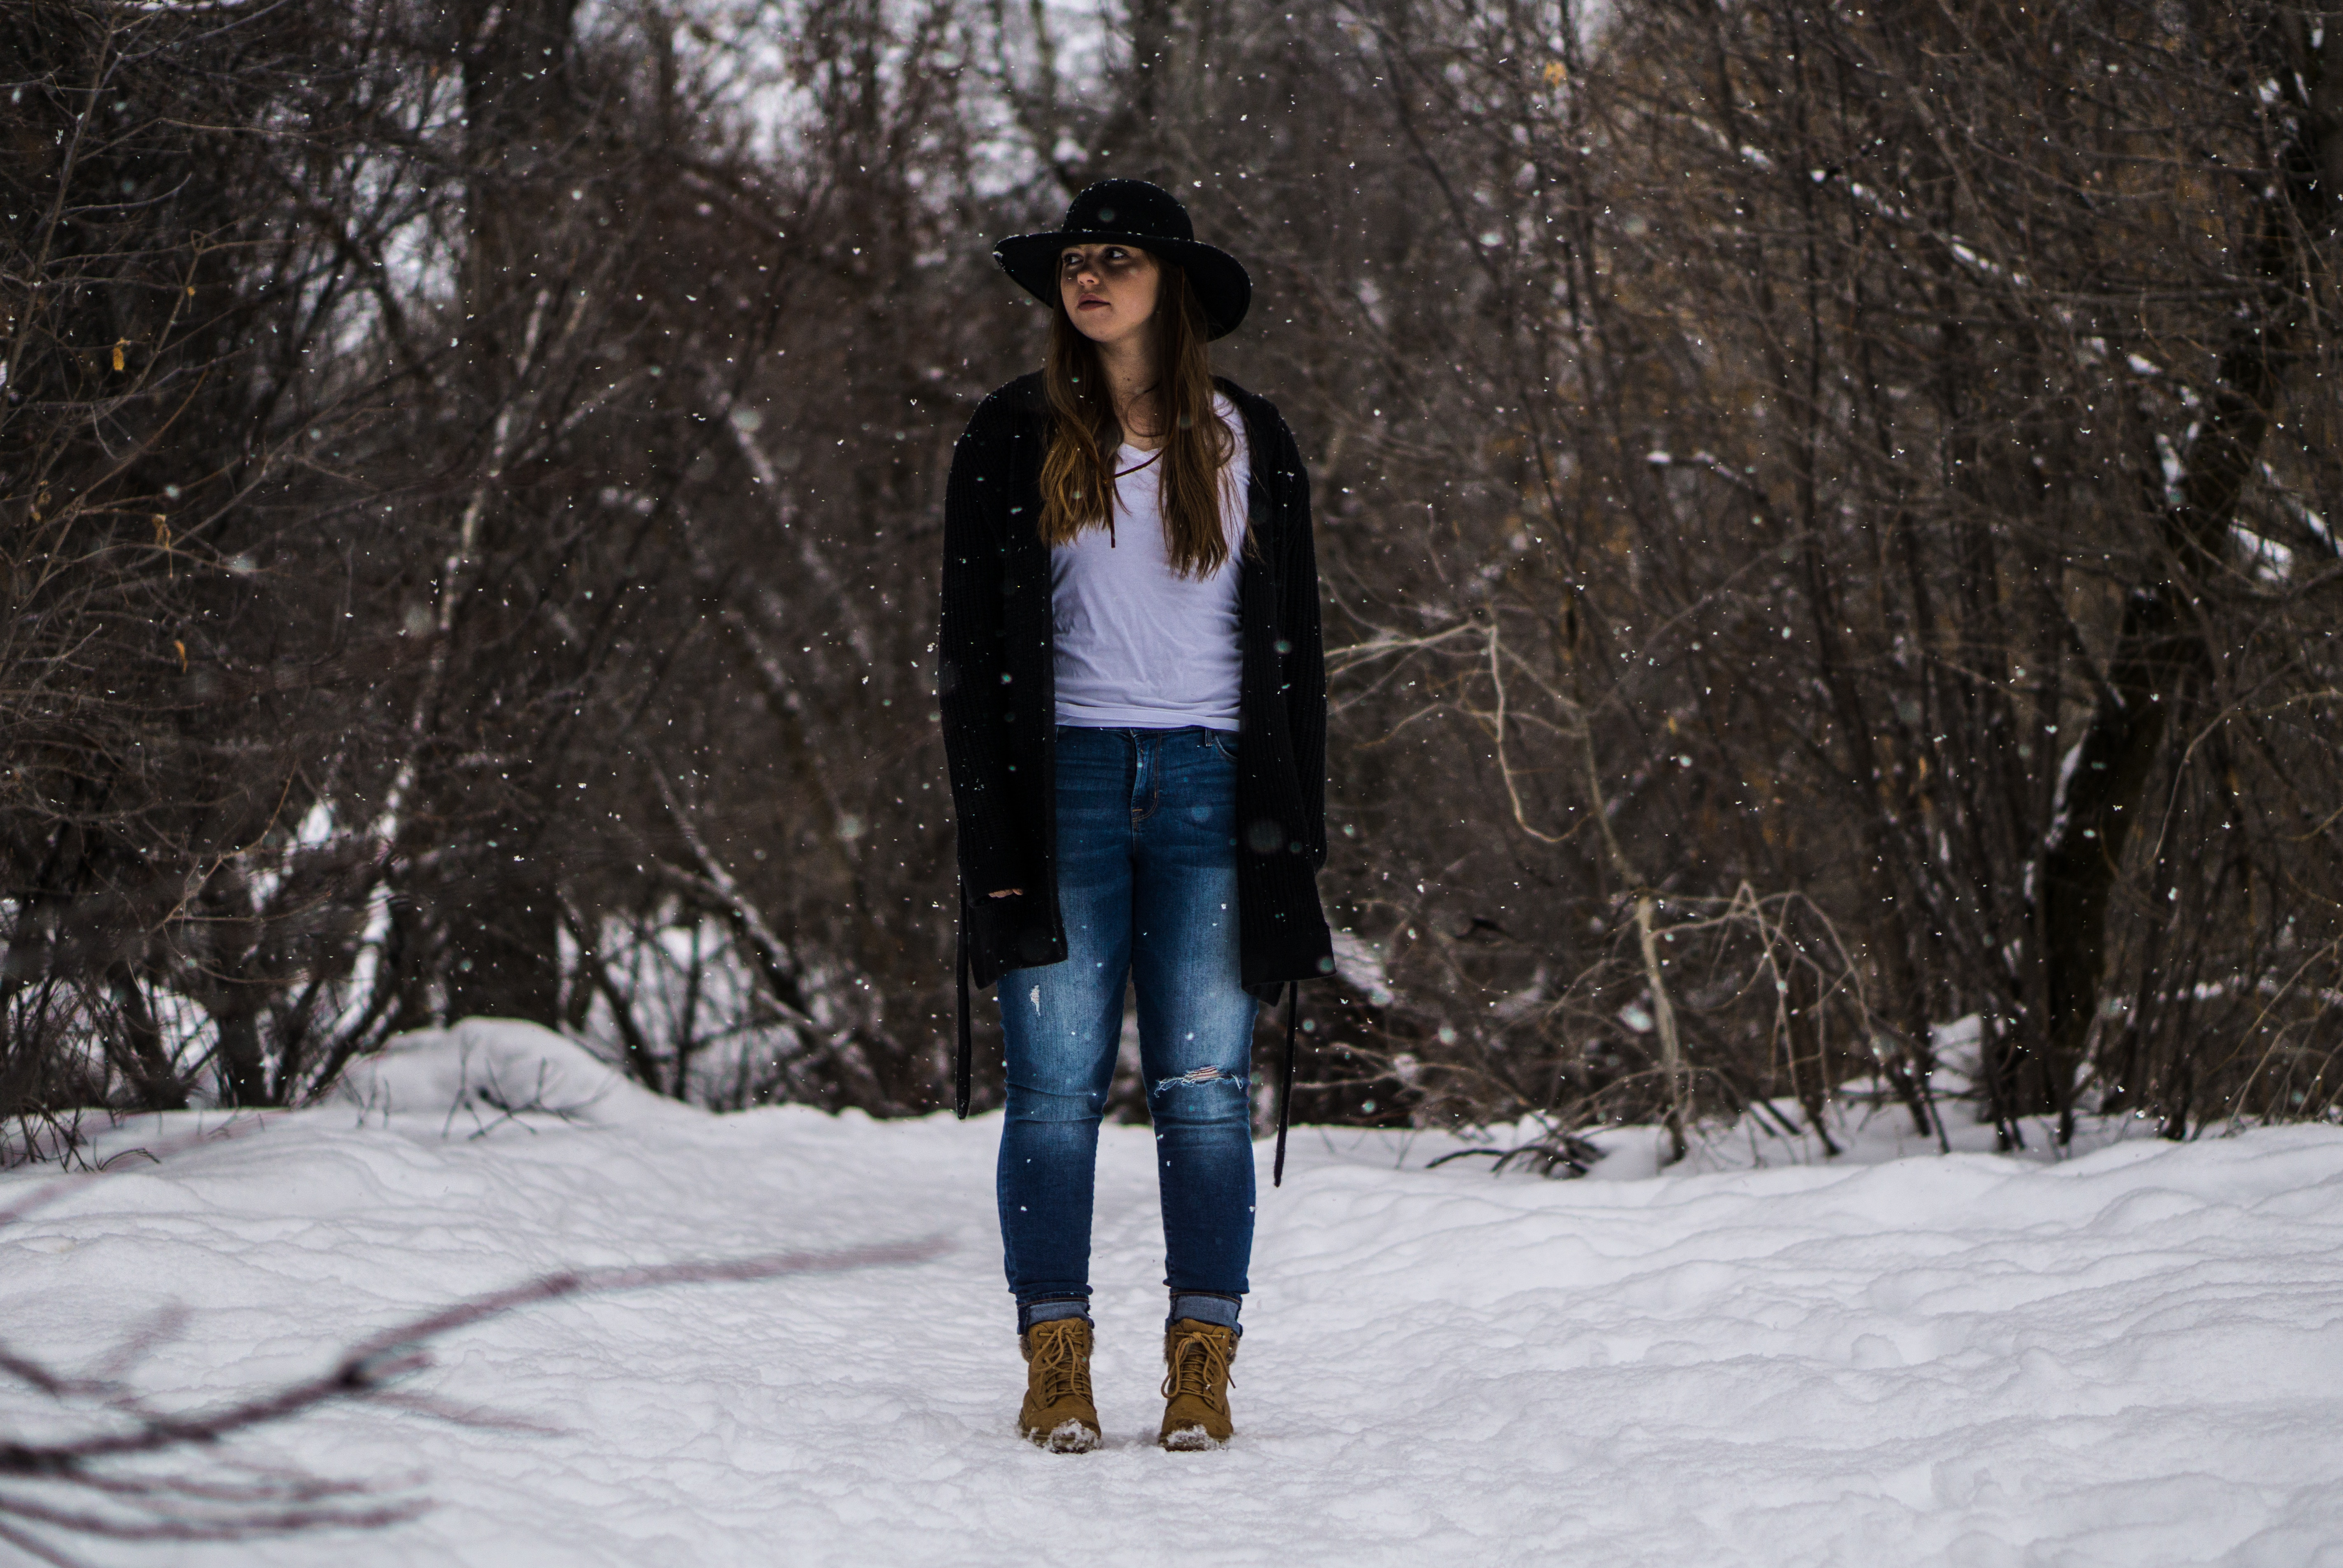 Seasonal Affective Disorder in Teens: Everything You Need to Know